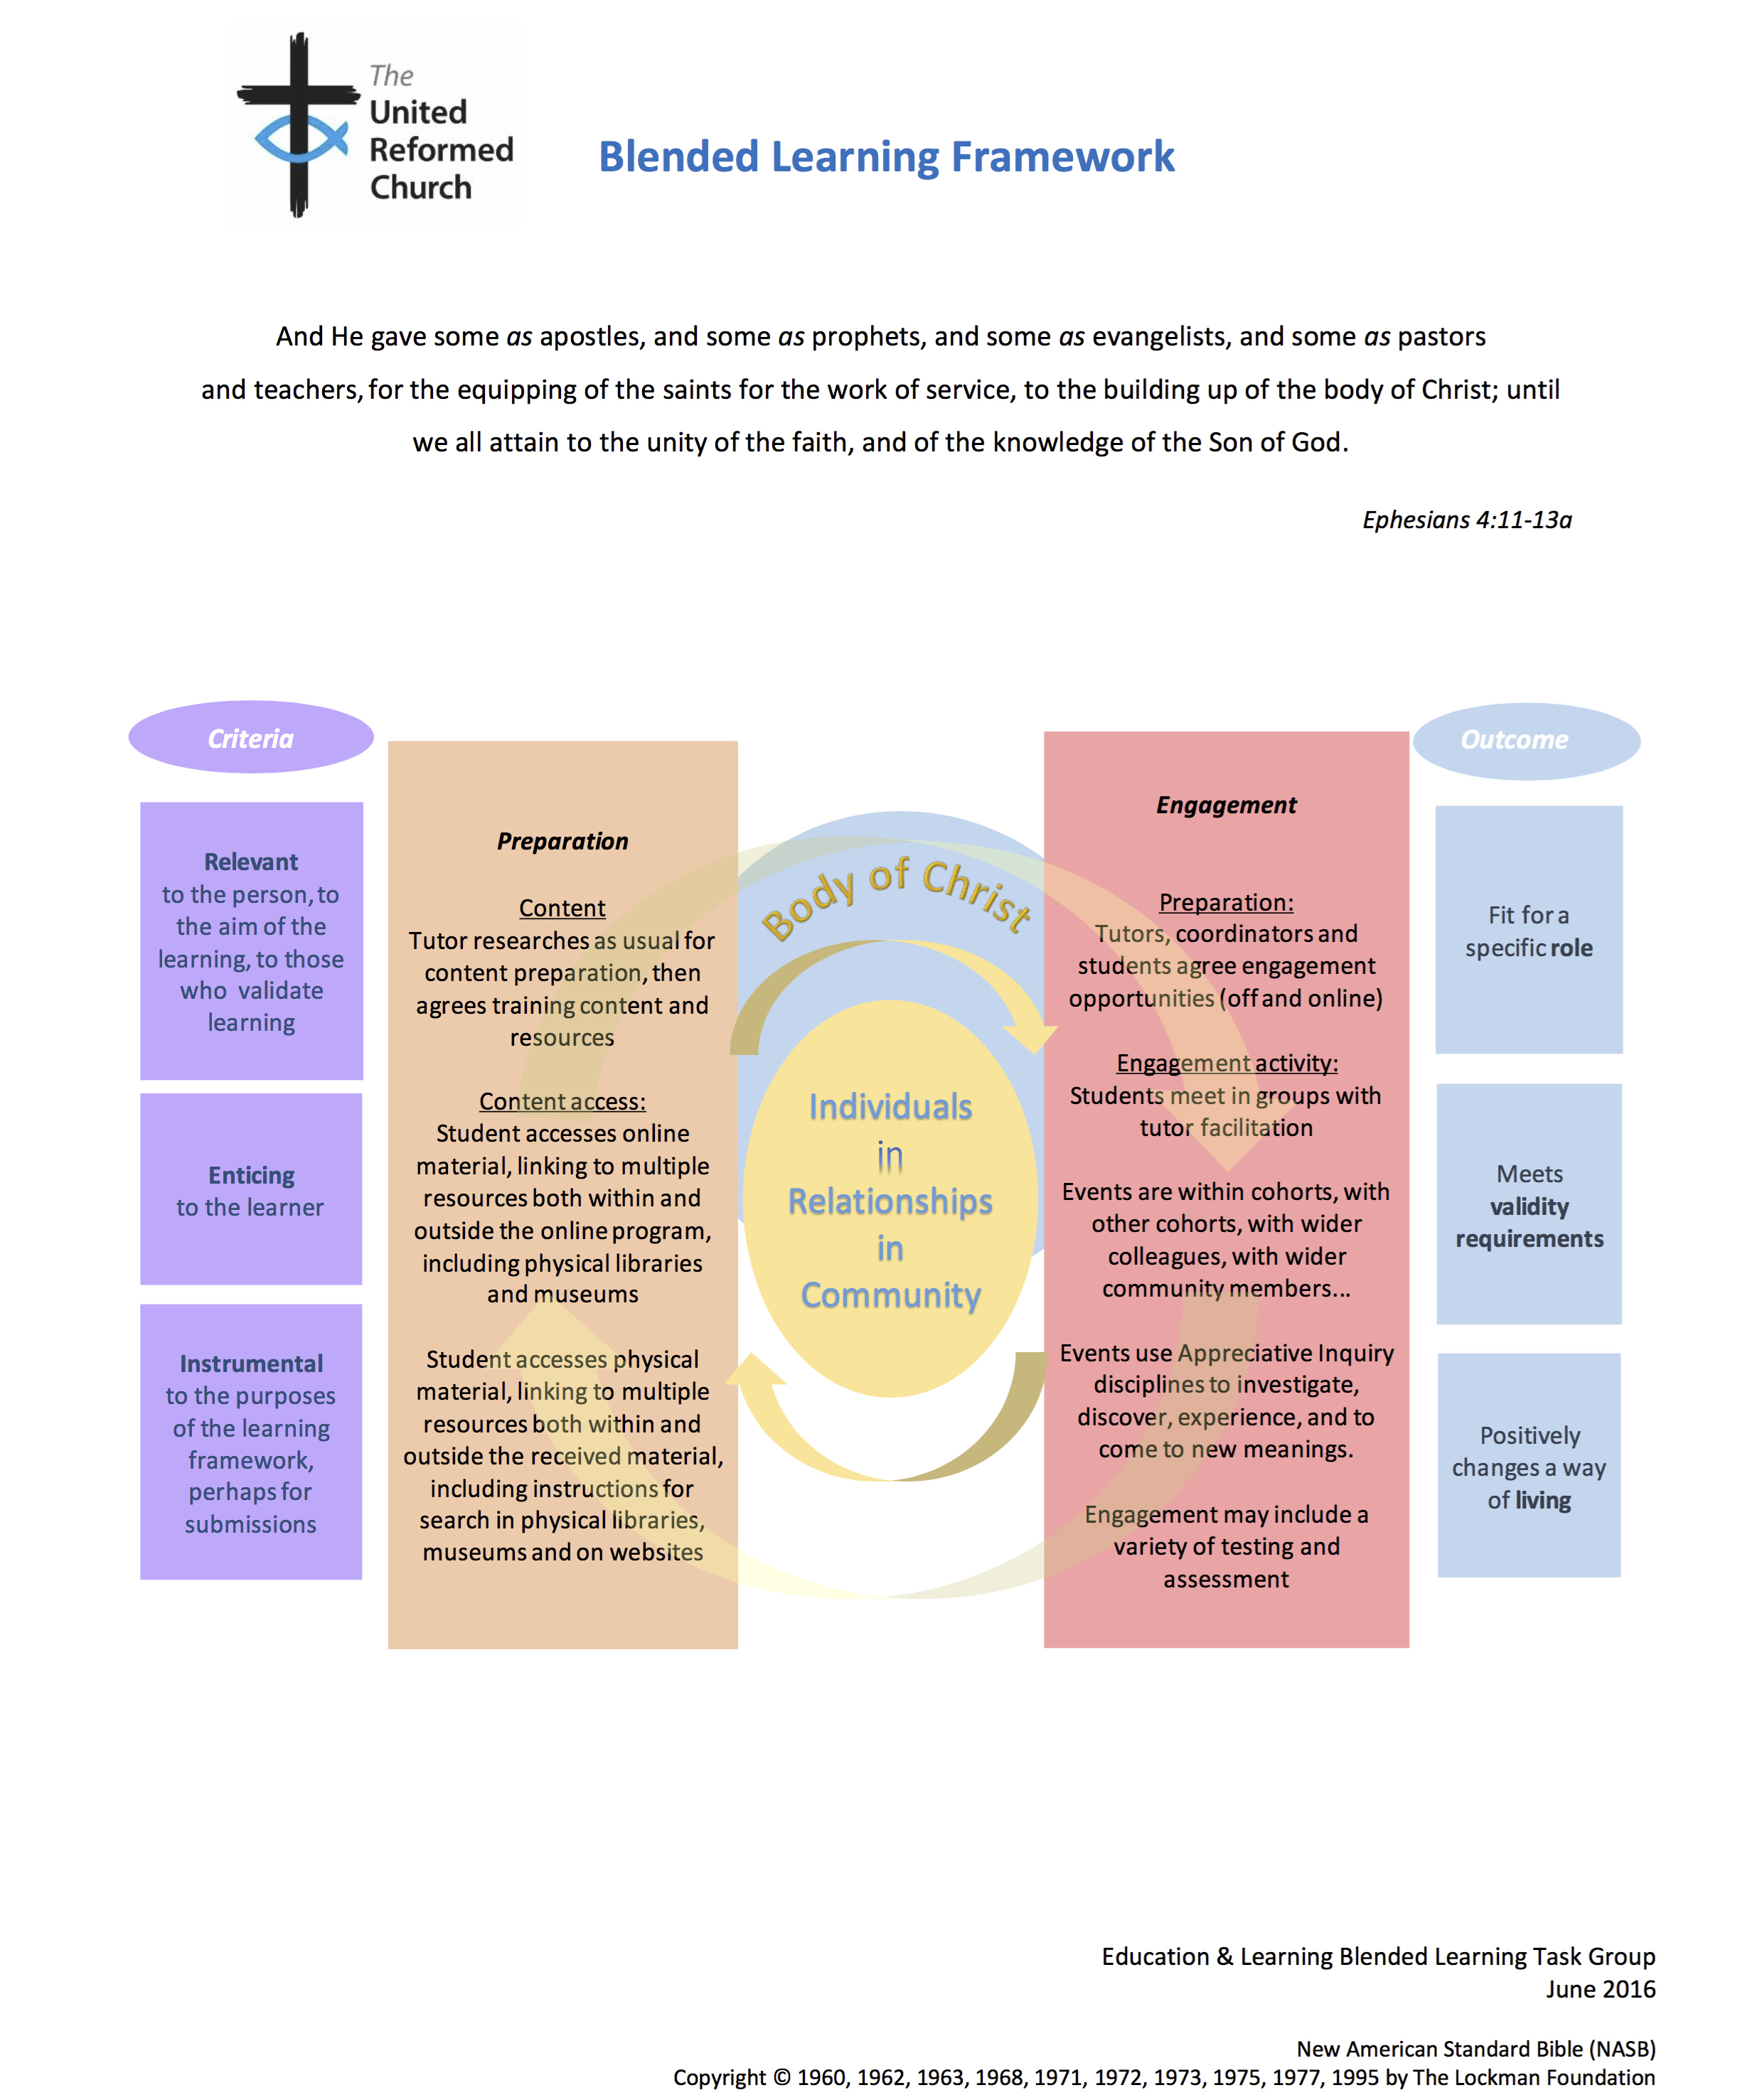 United Reformed Church Blended Learning Framework